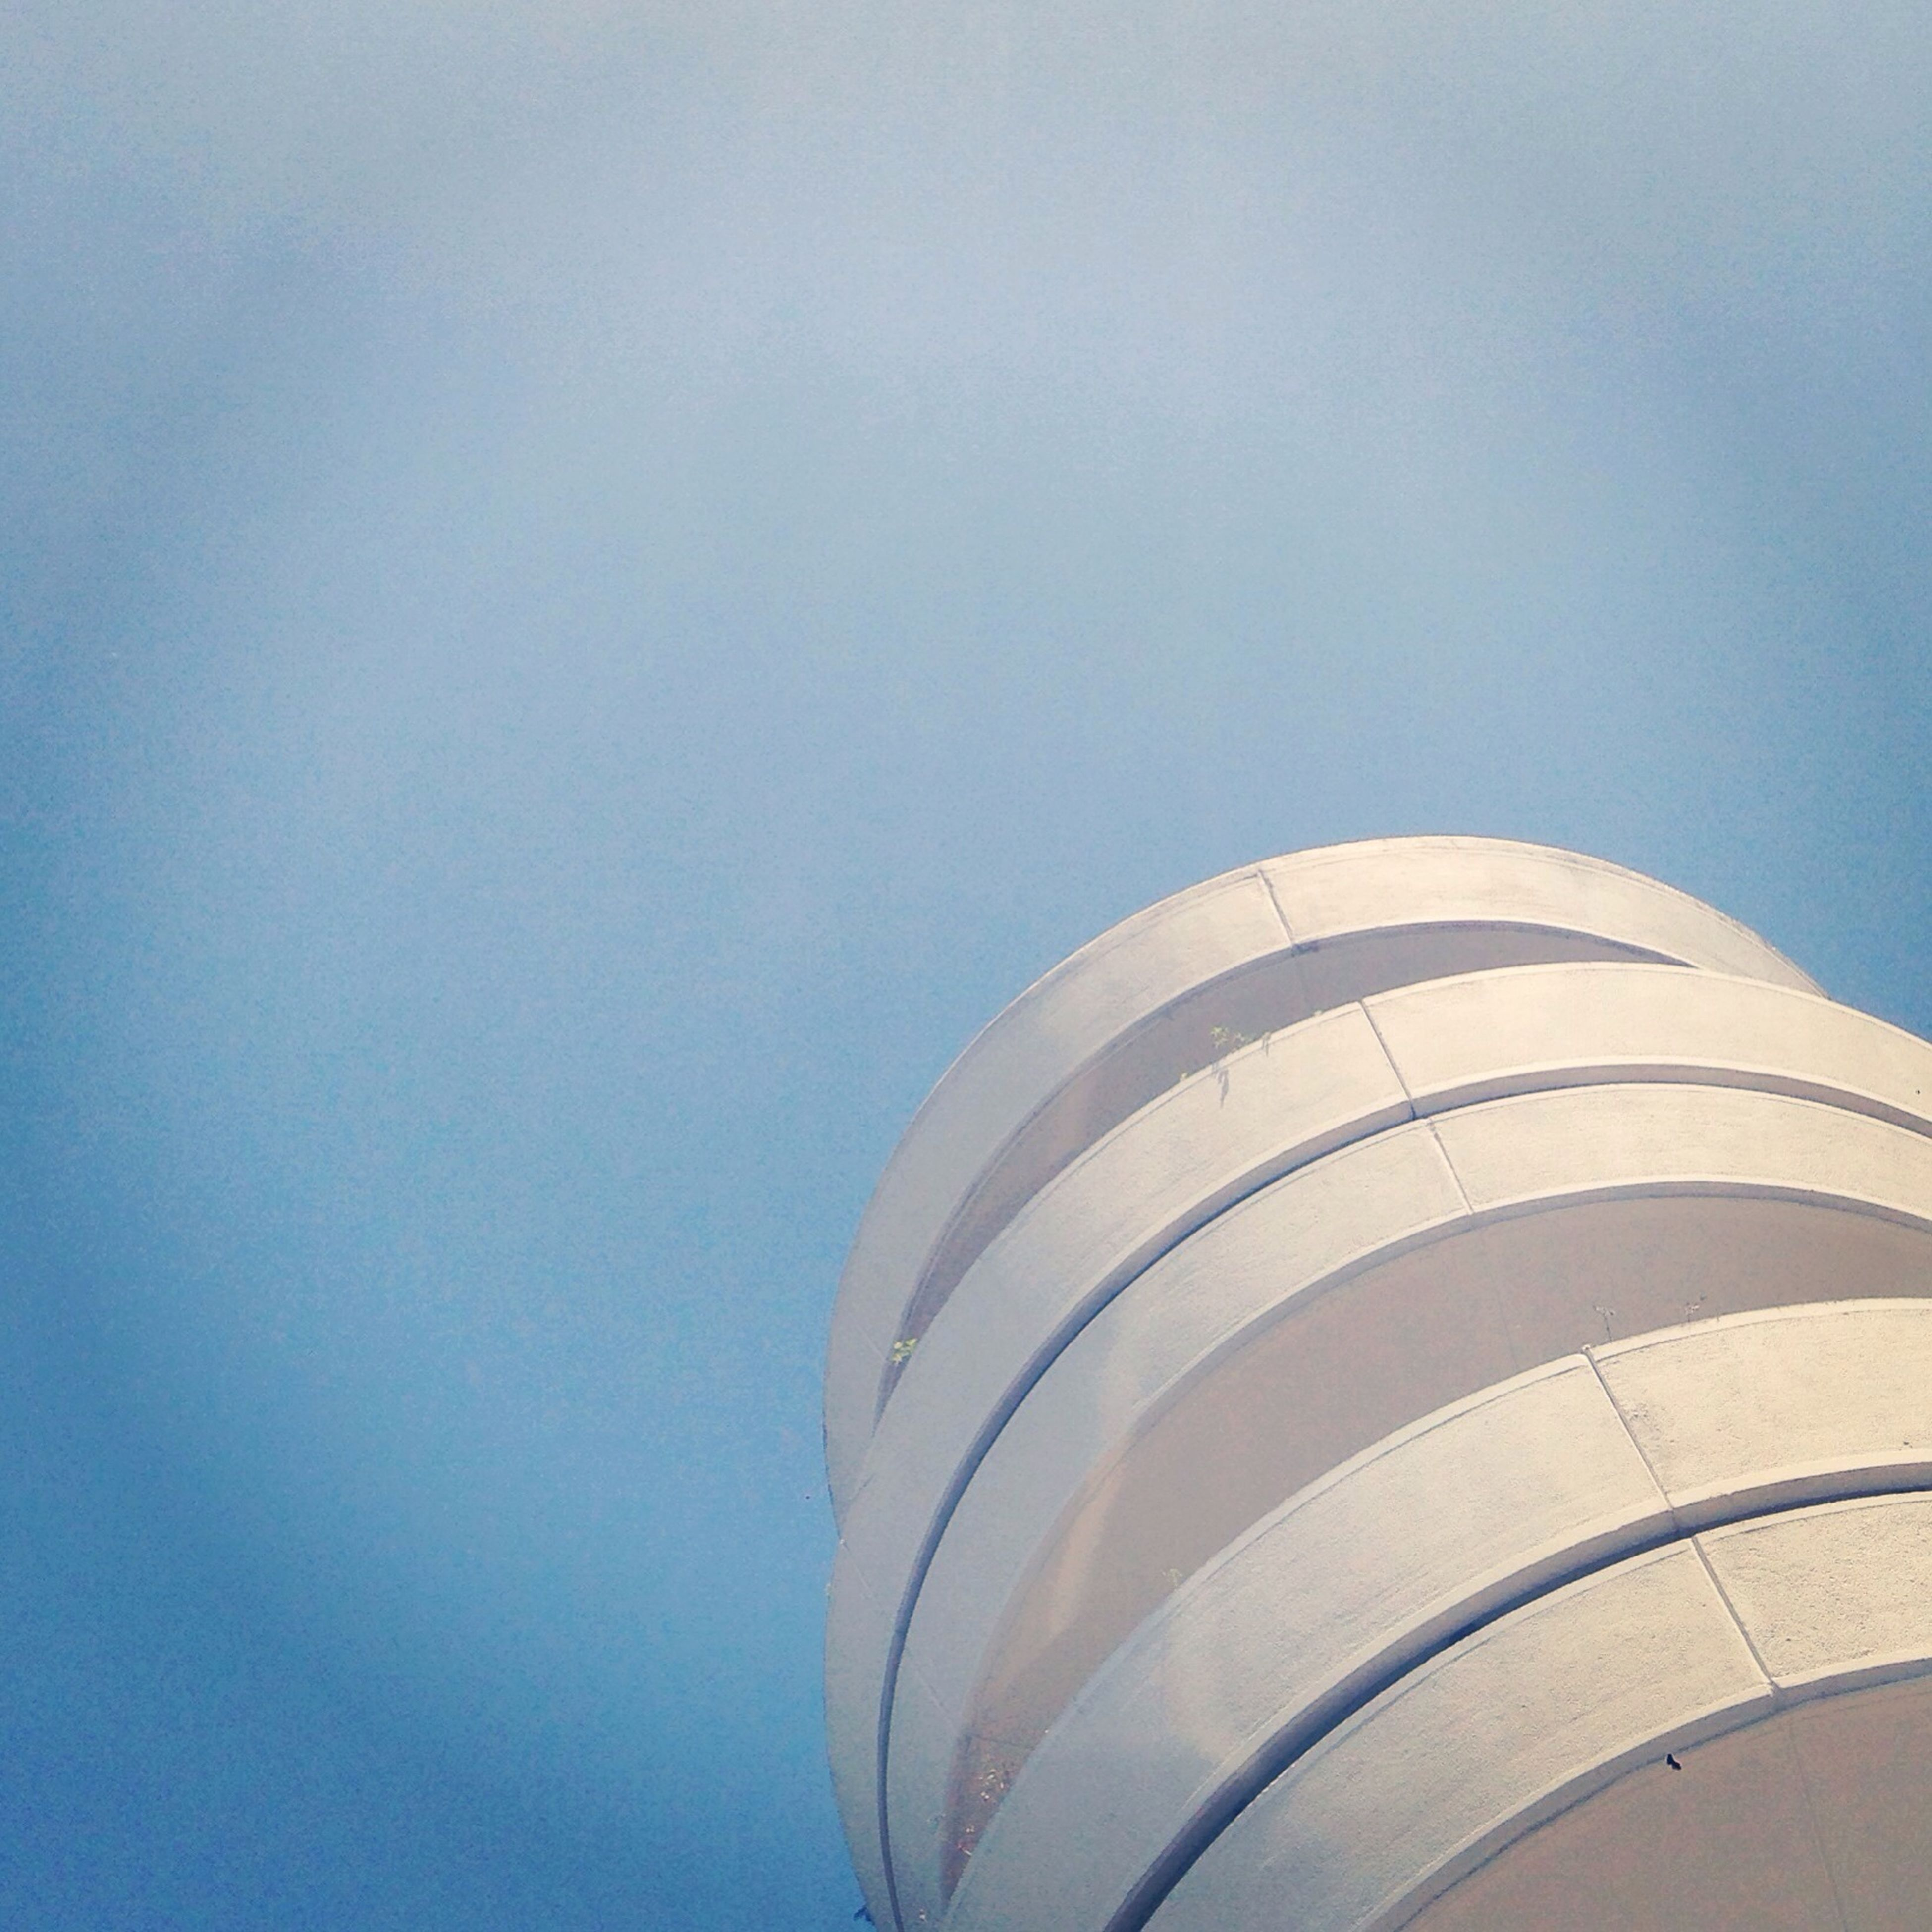 architecture, low angle view, built structure, building exterior, sky, copy space, blue, modern, clear sky, tower, day, city, no people, tall - high, high section, outdoors, building, part of, pattern, office building